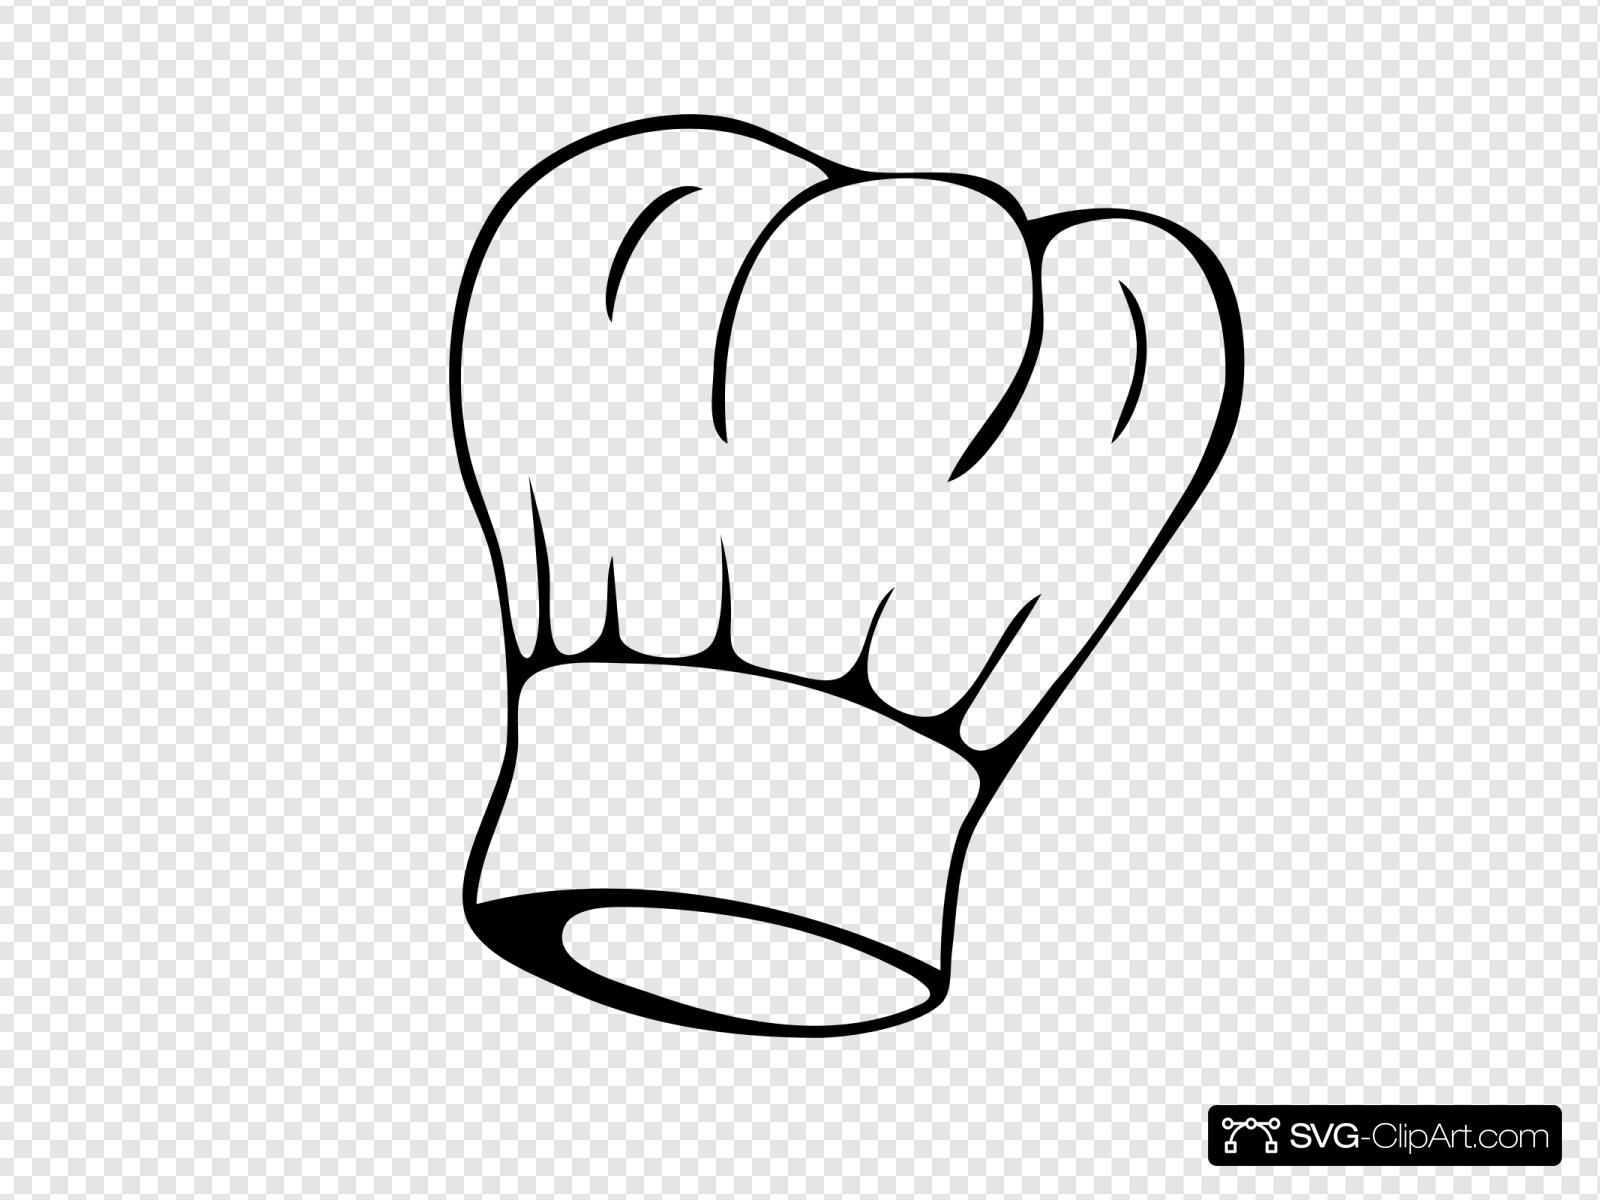 Toque clipart picture royalty free Toque Clip art, Icon and SVG - SVG Clipart picture royalty free